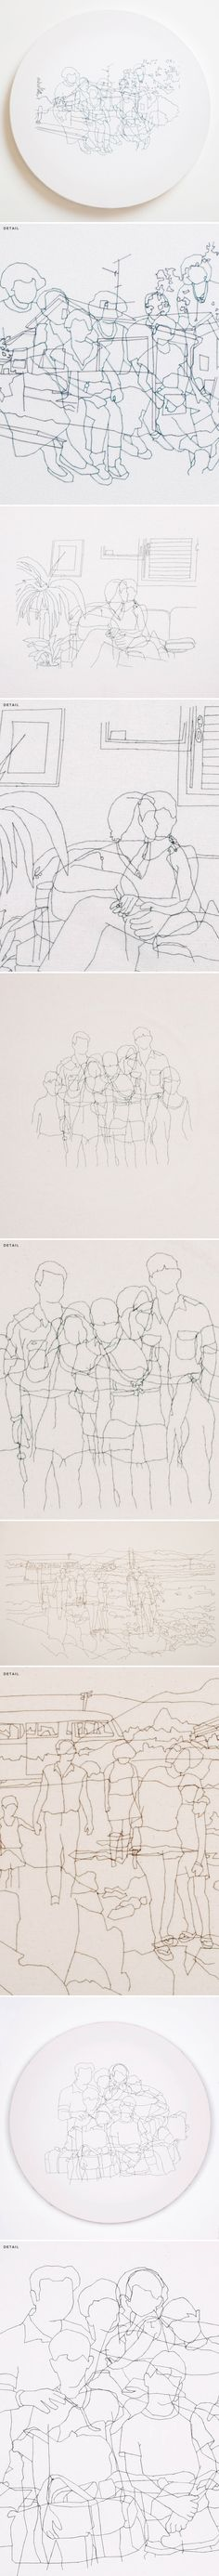 """embroidered """"drawings"""" by hagar cygler - """"families"""" series"""